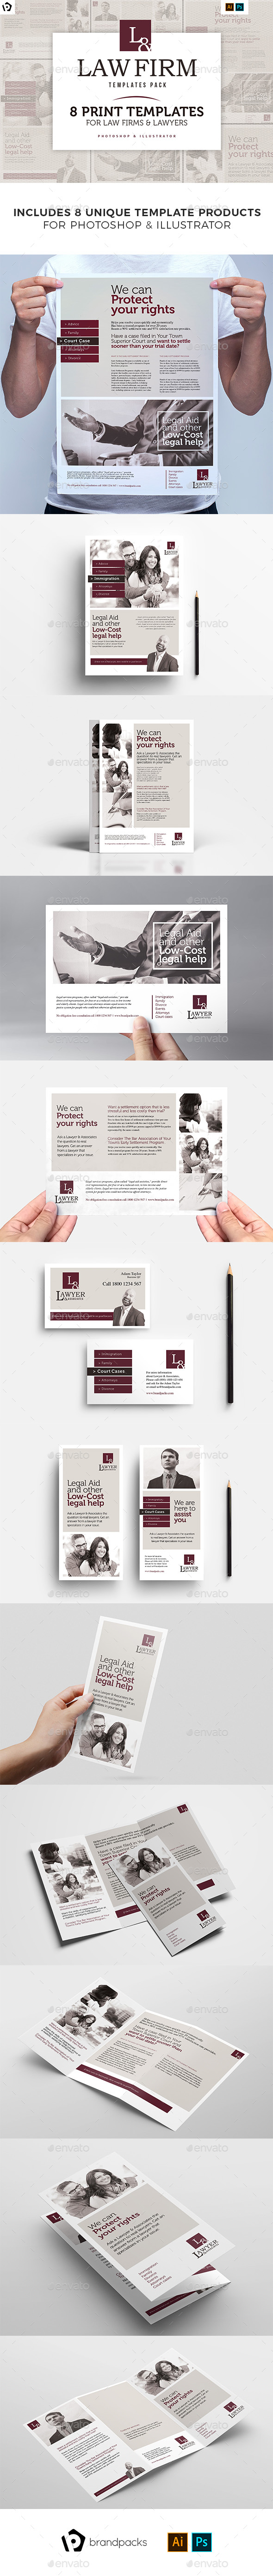 Law Firm Templates Bundle - Corporate Flyers